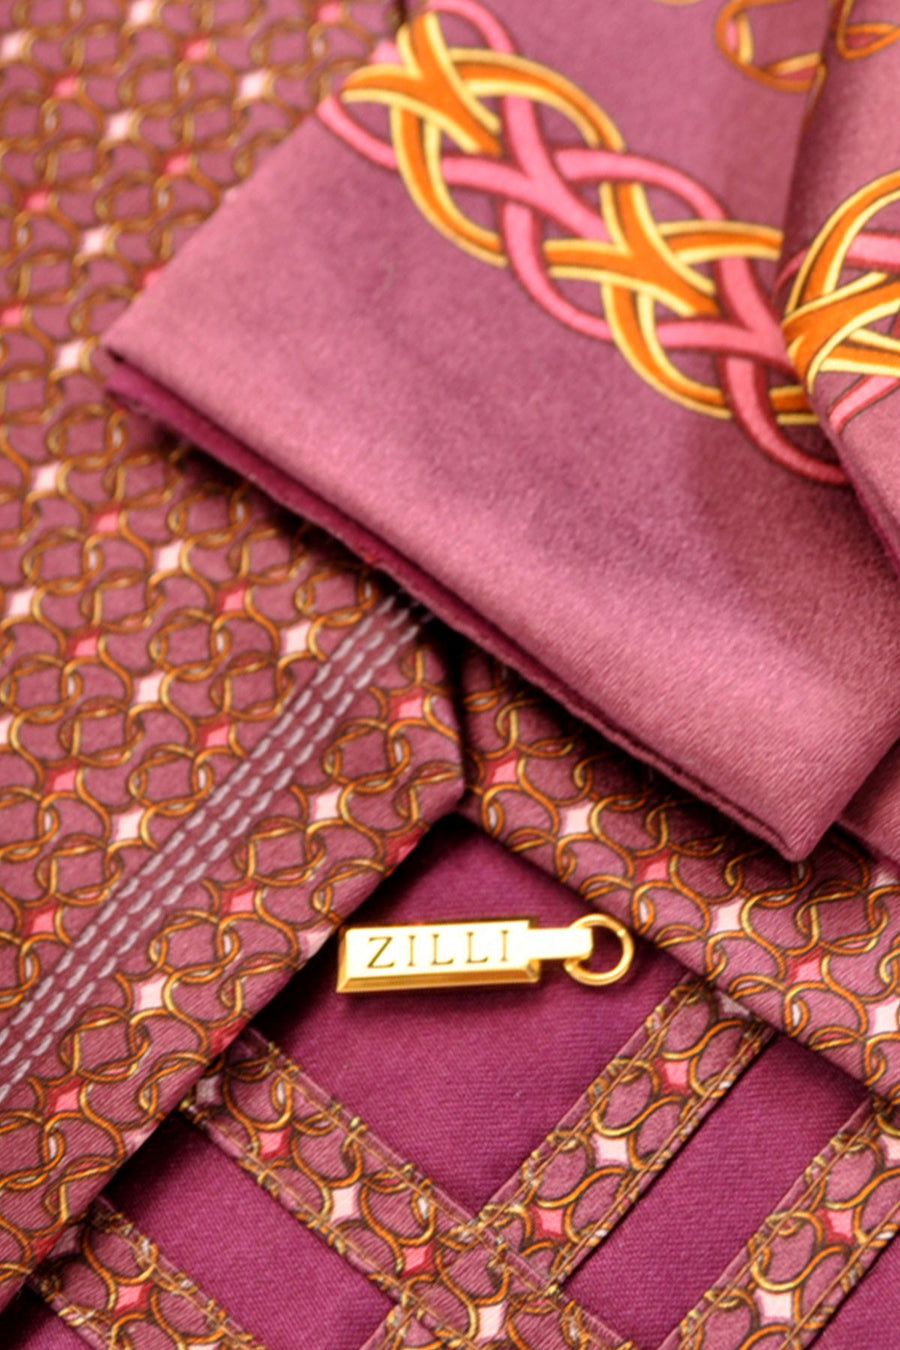 Zilli Tie & Pocket Square Set Plum Pink Gold Geometric